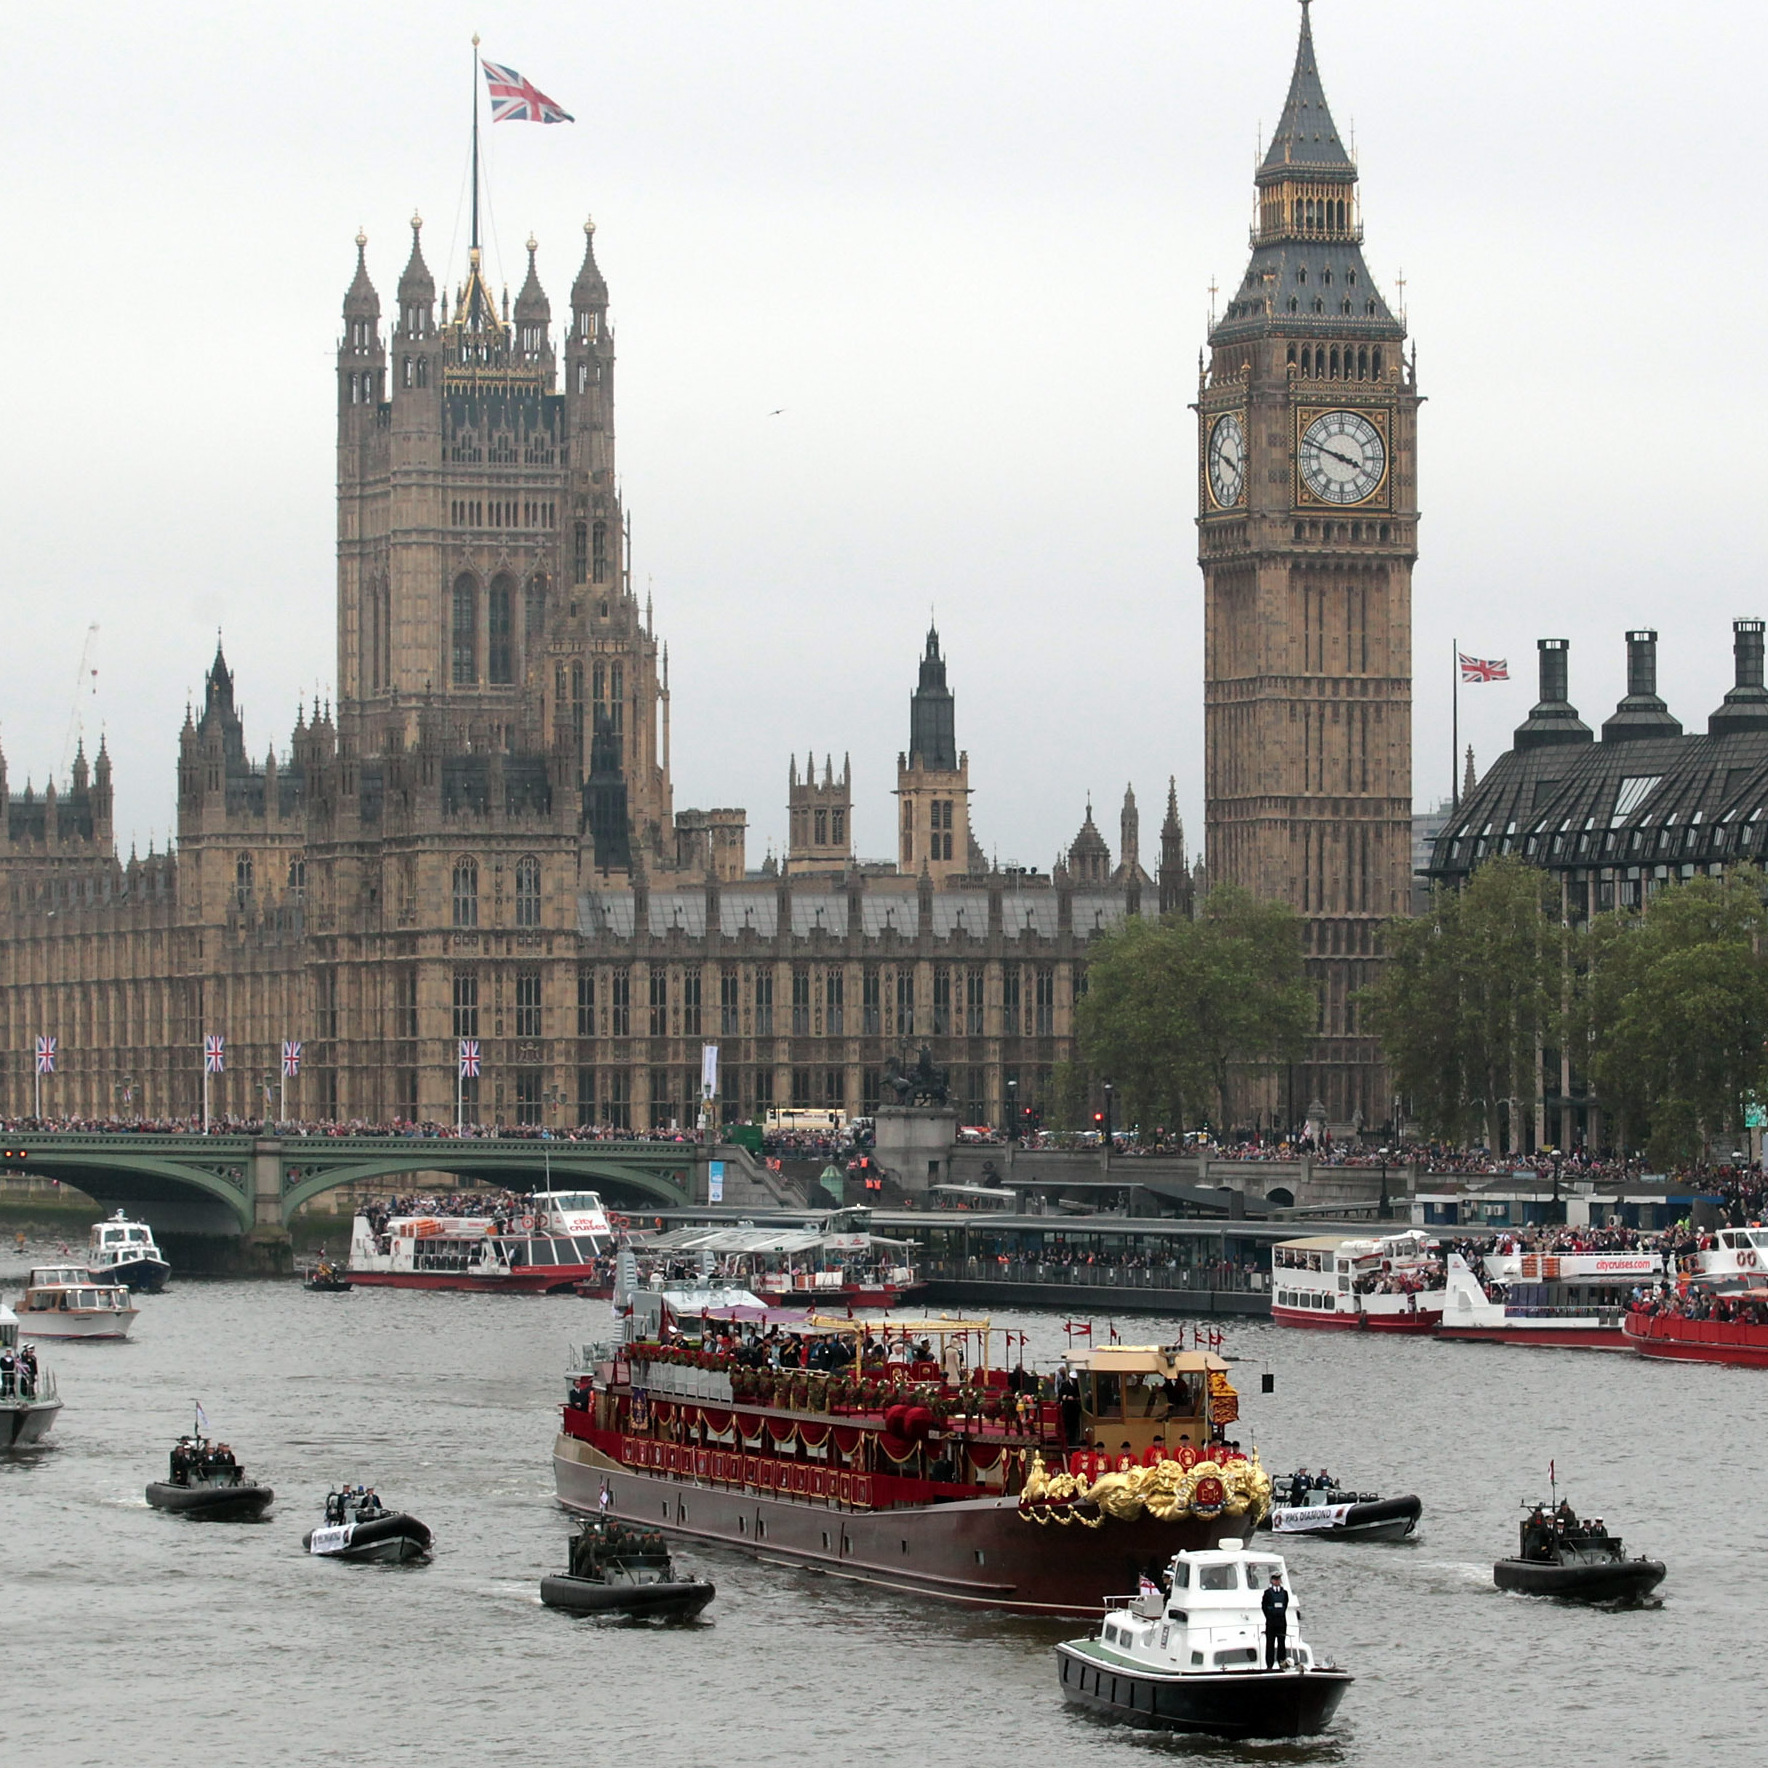 Thousands crowded the banks of the Thames today to catch a glimpse of Queen Elizabeth leading a flotilla of a thousand boats to mark her 60-year reign.